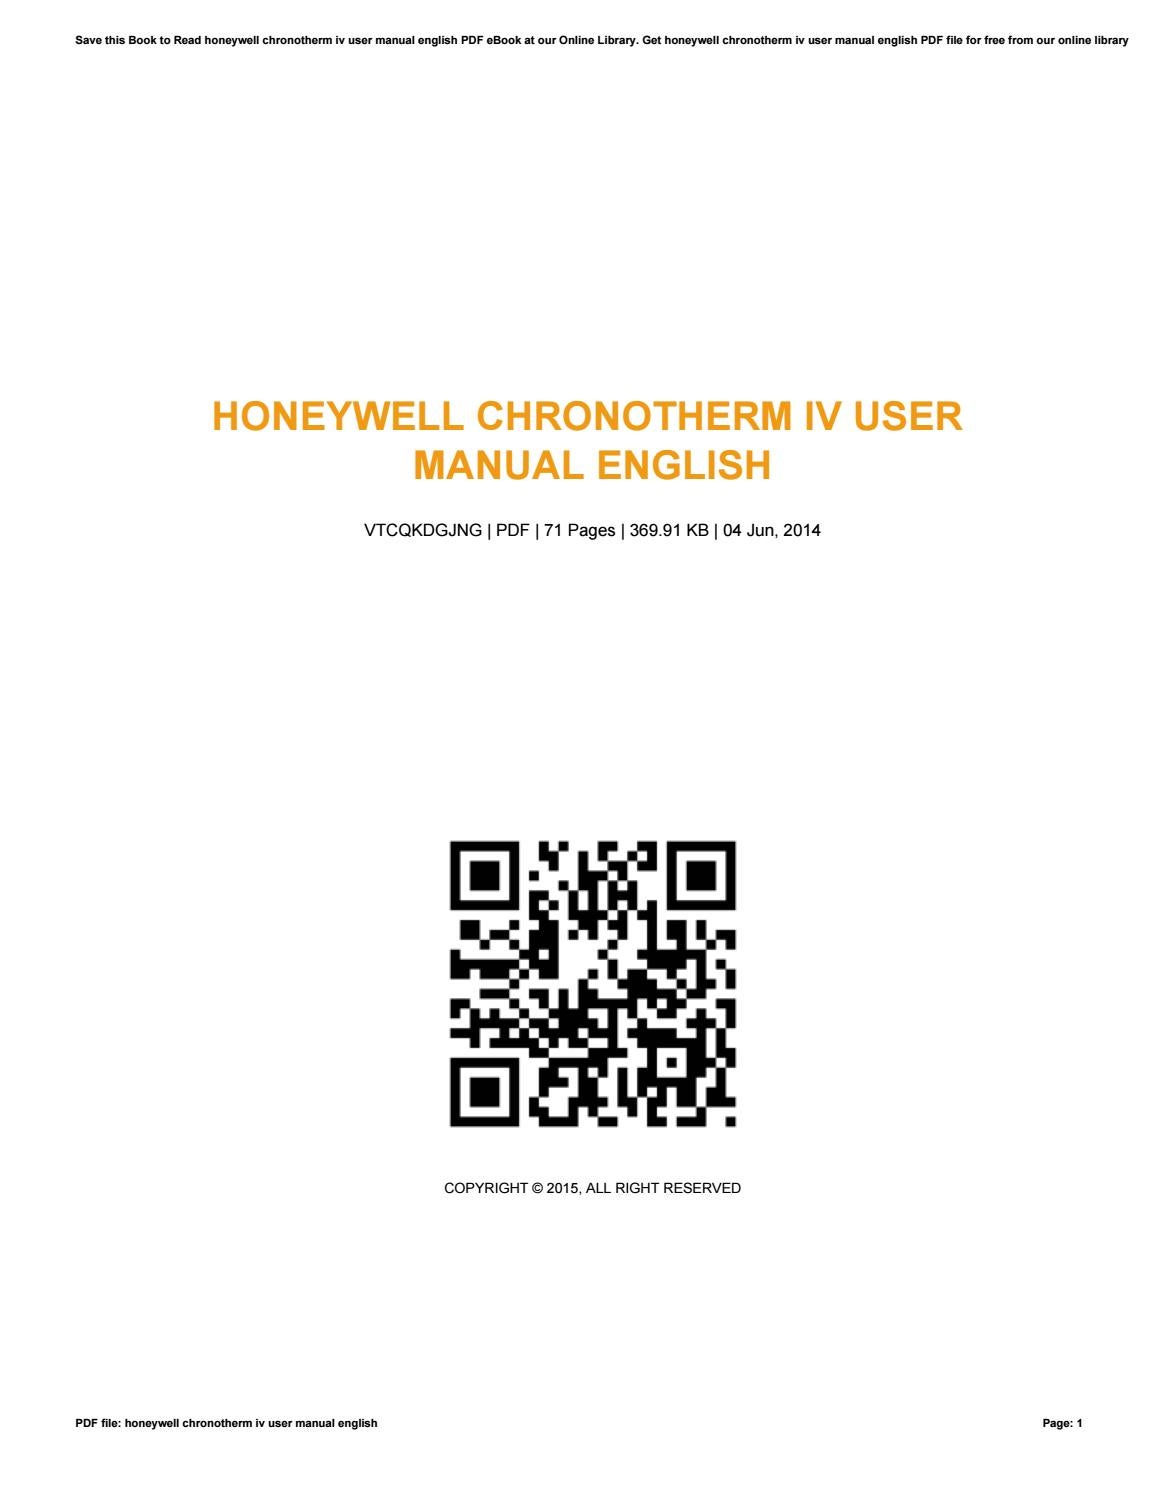 Honeywell Chronotherm Iv User Manual English How To I Need A Color Coded Wiring Diagram For My Plus By Aaroncain3035 Issuu Rh Com Pdf Battery